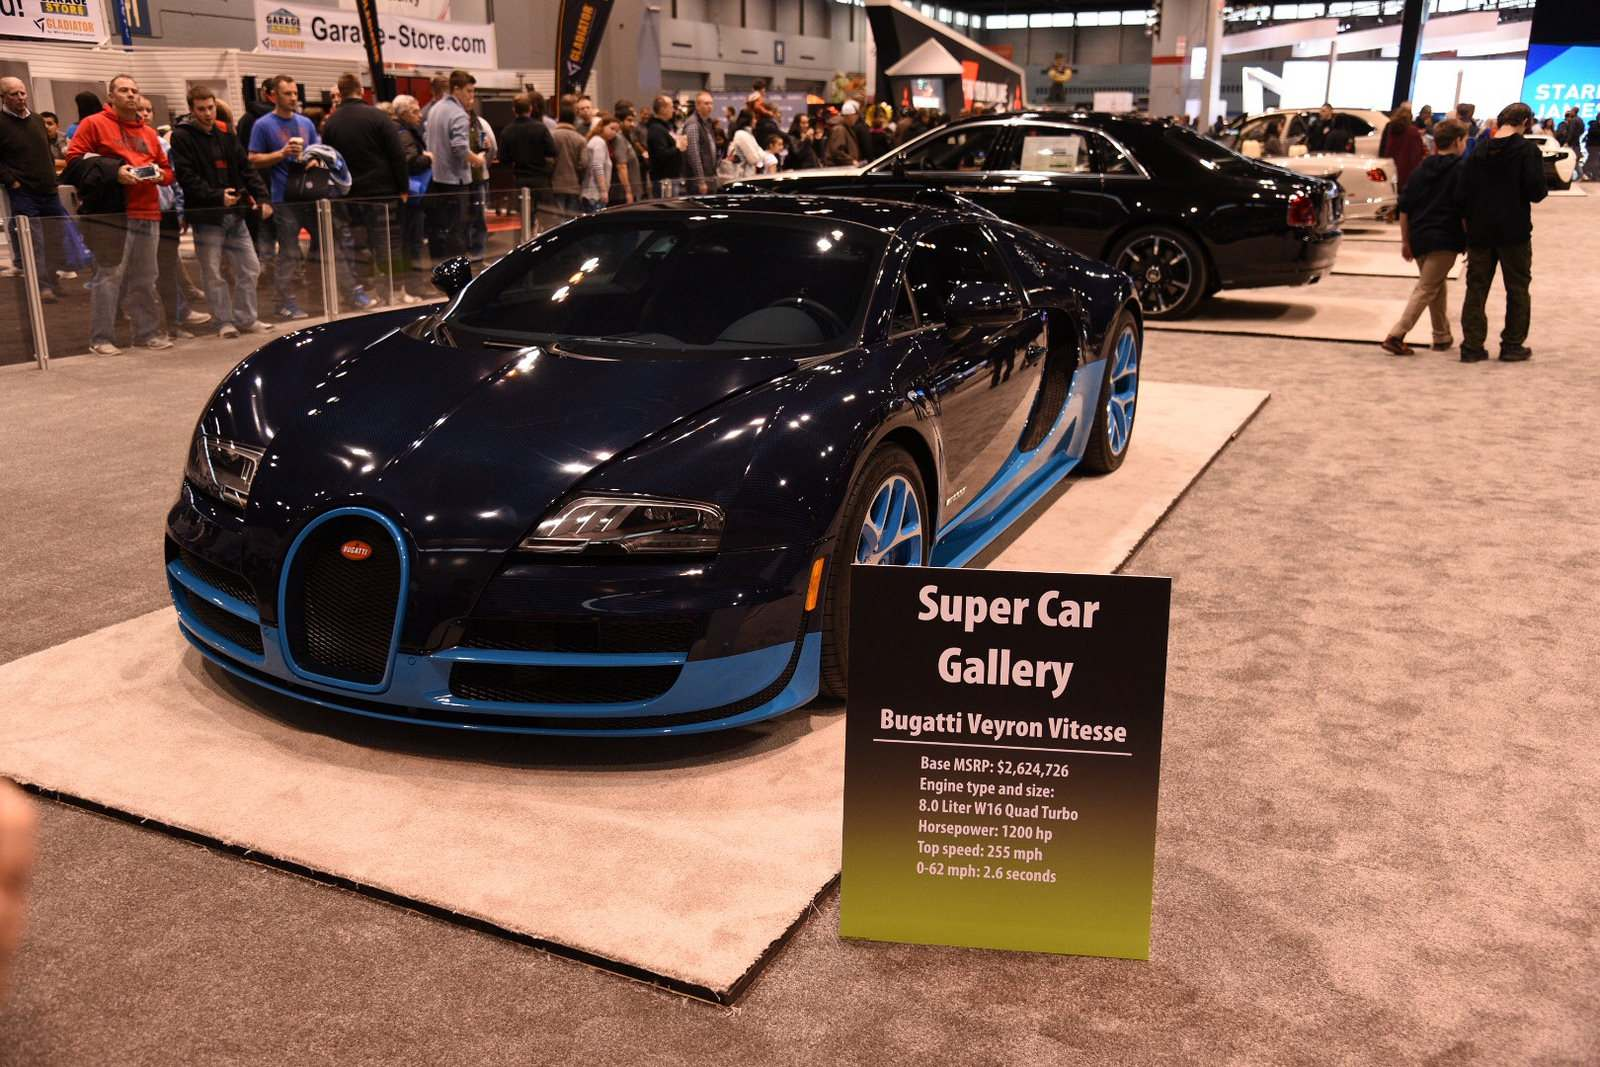 super car gallery3 Supercars at Chicago Auto Show 2016